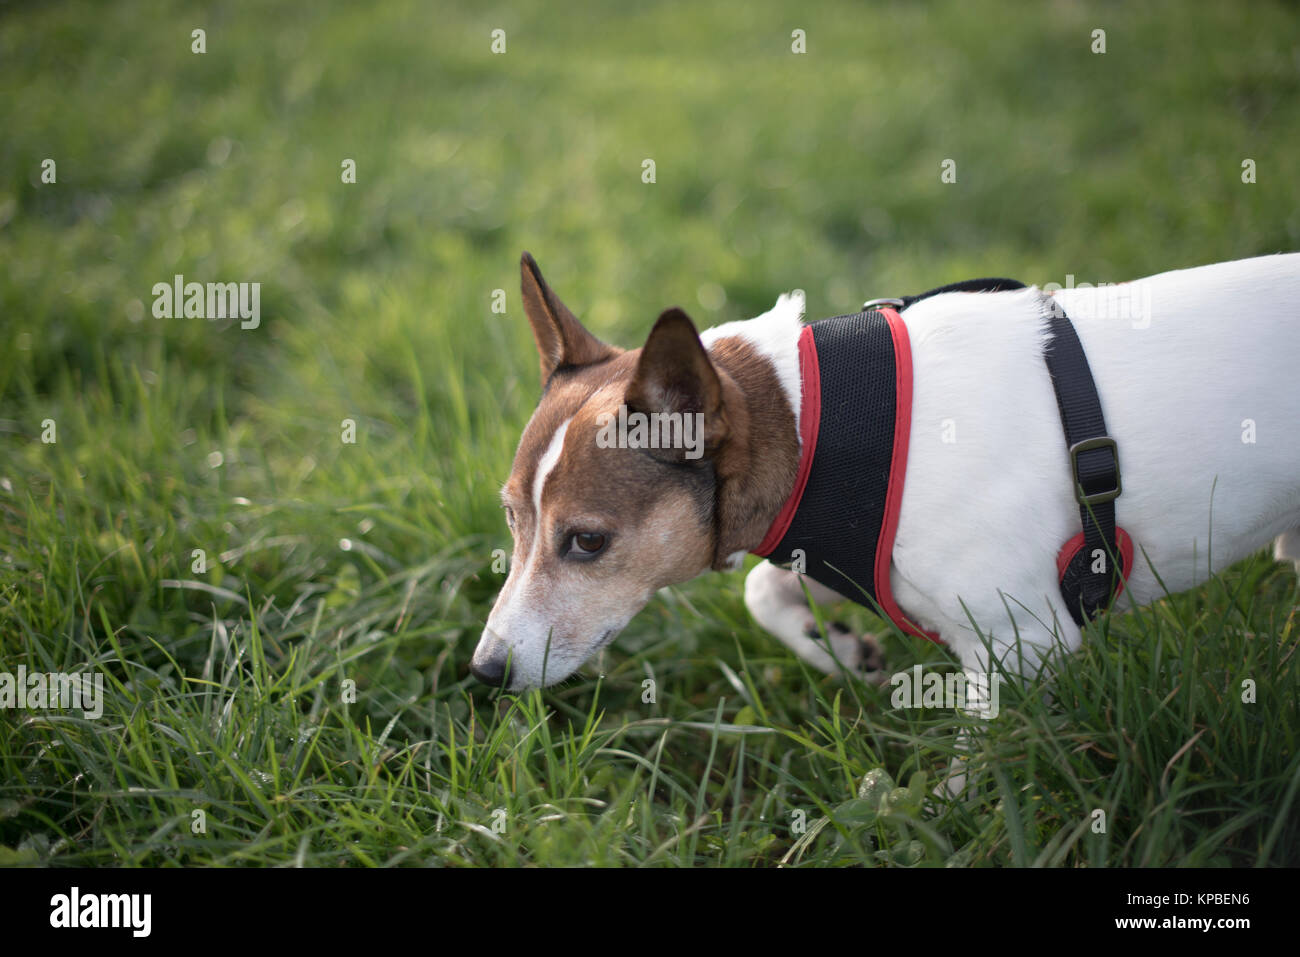 A smooth-haired Jack Russell terrier walking in a grass field wearing a harness and looking a little ashamed - Stock Image